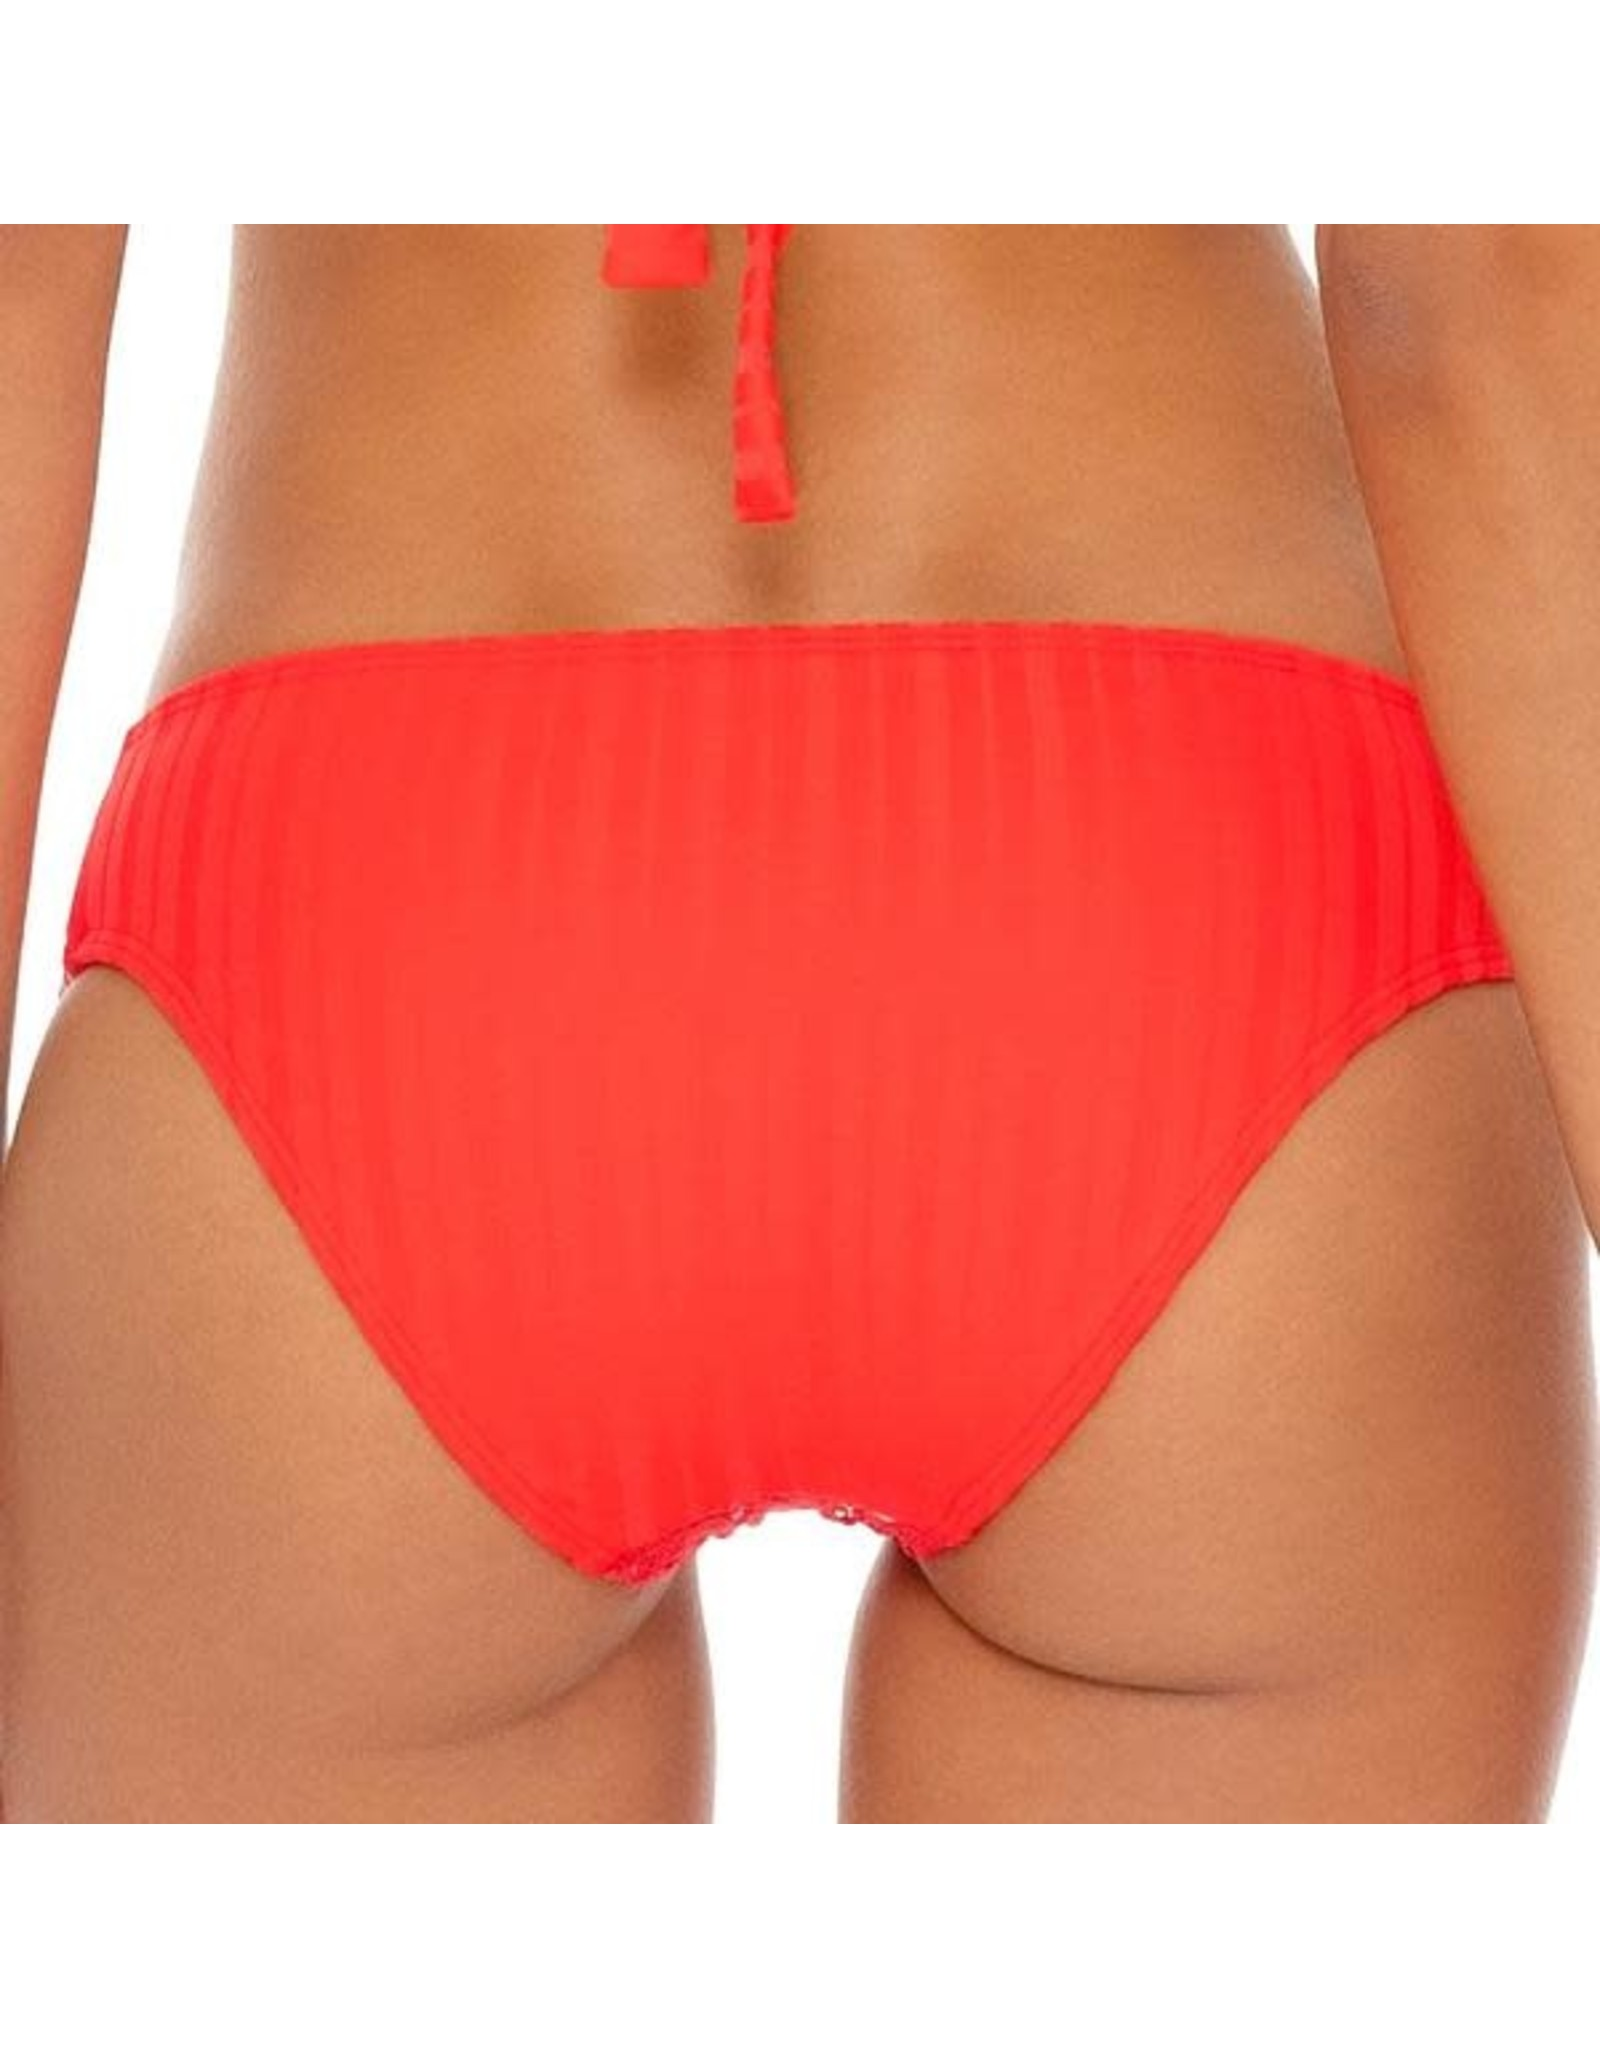 Luli Fama Corazon de Seda Seamless Full Bottom